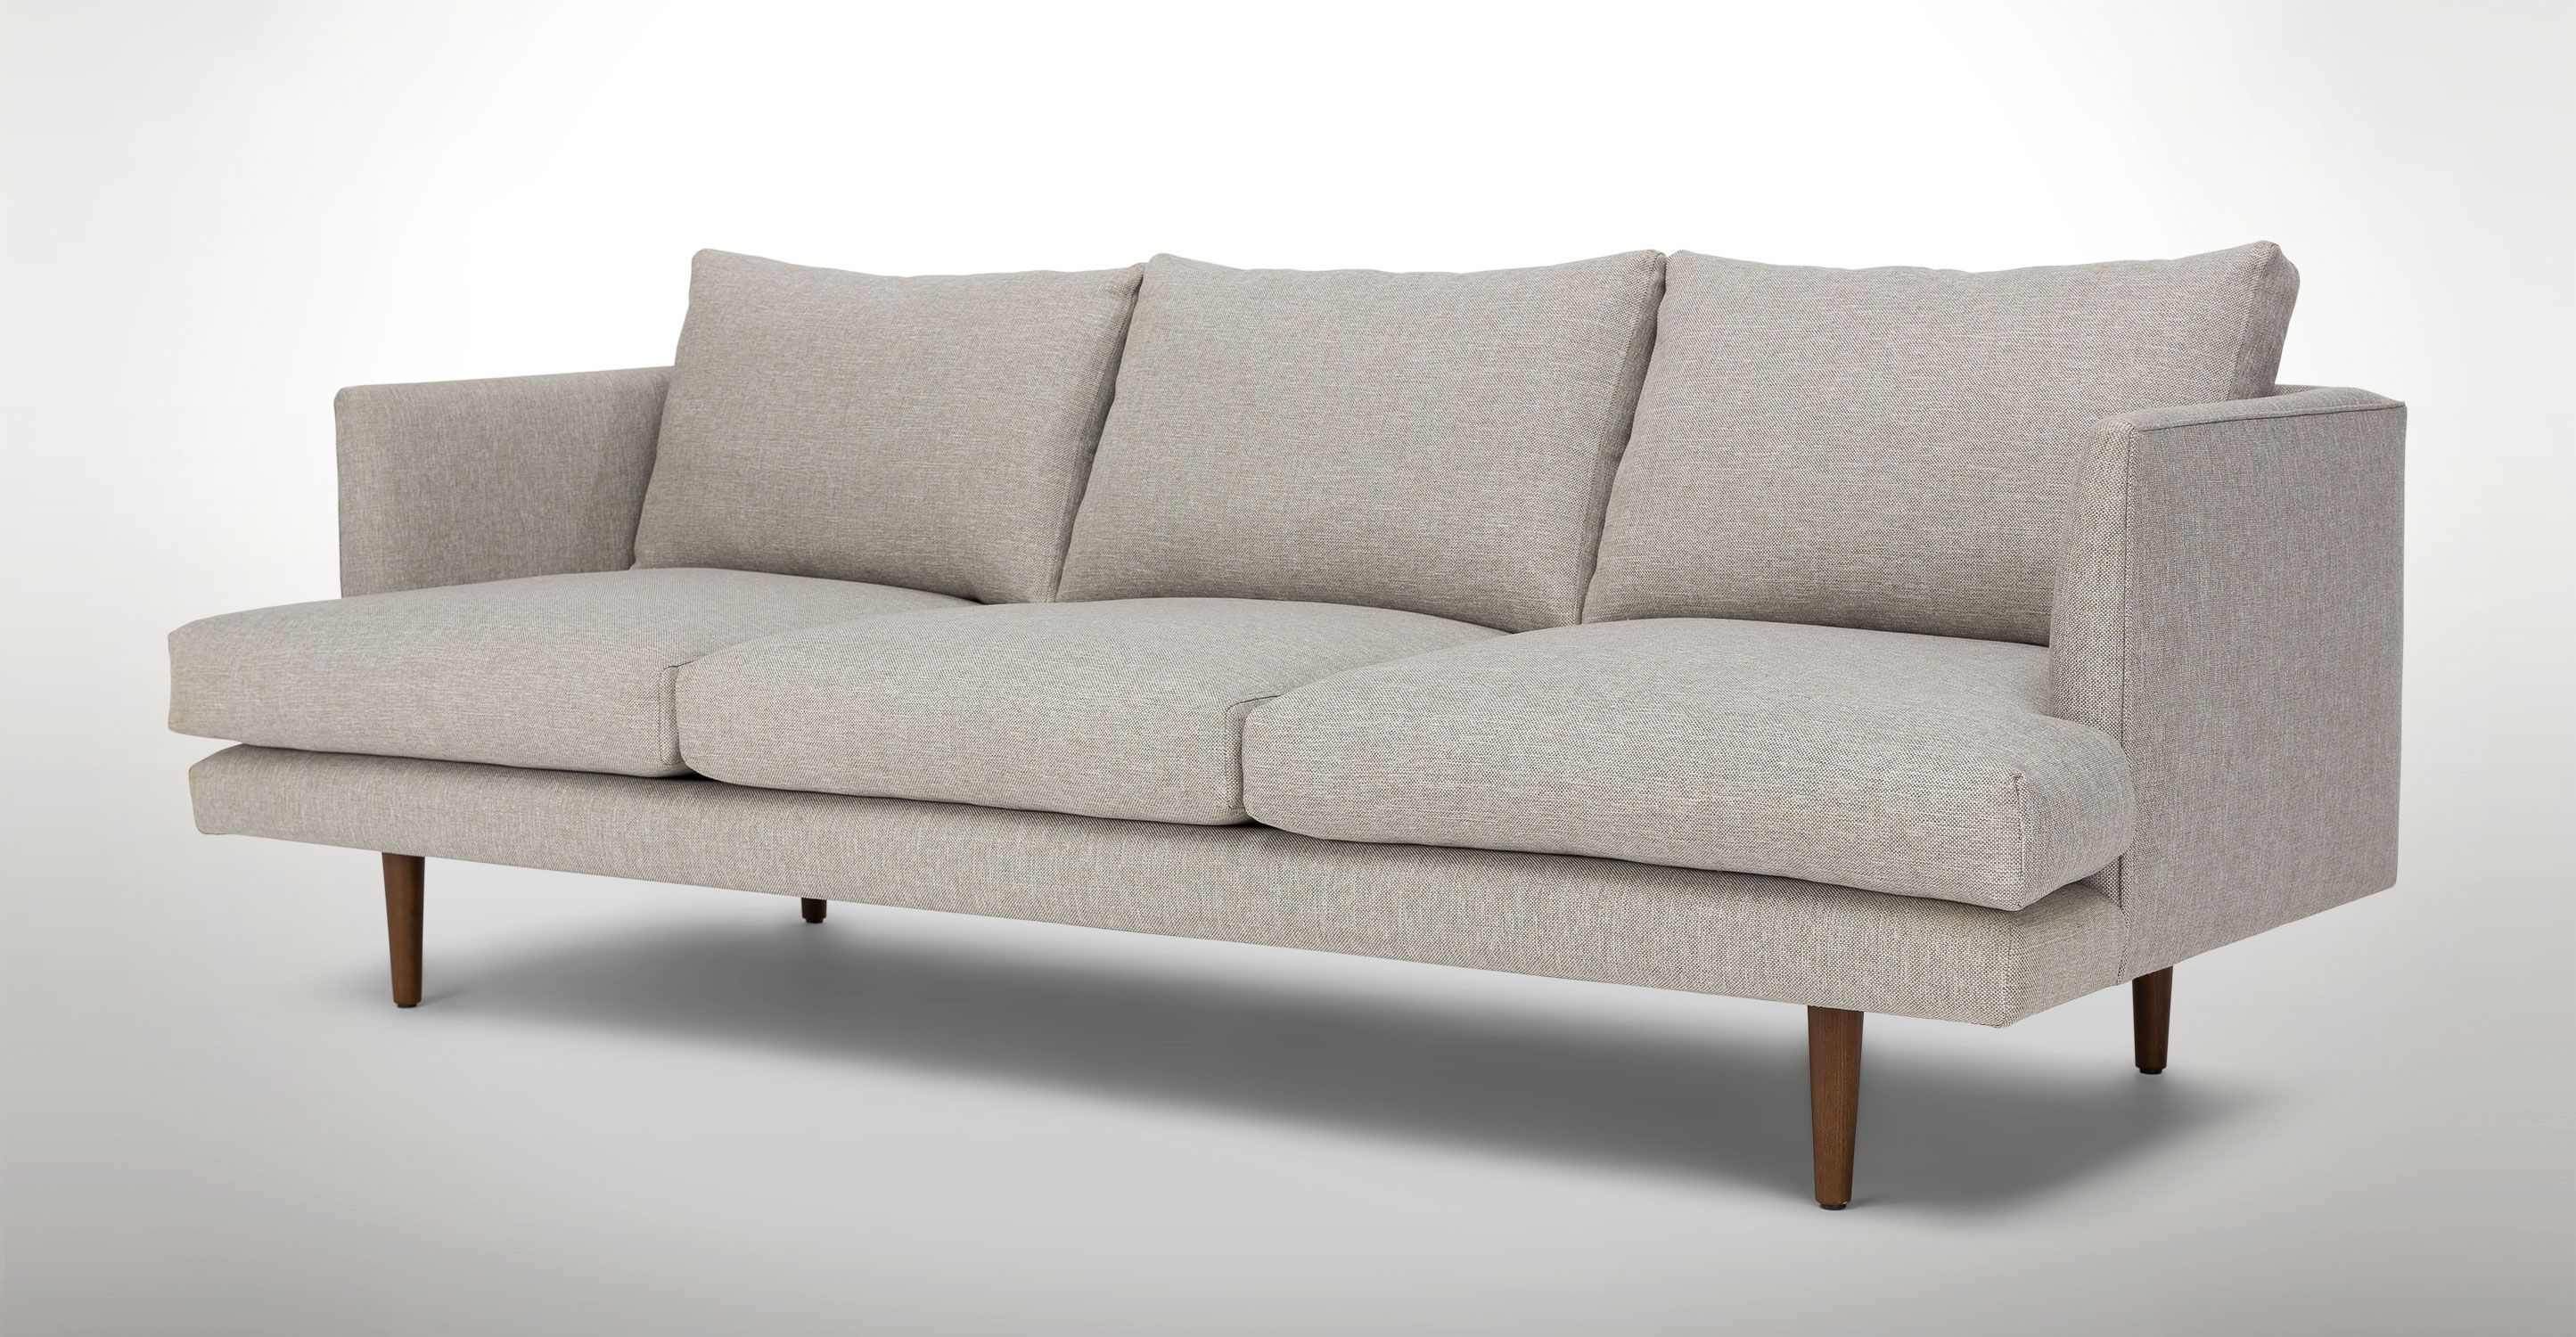 Light Gray Sofa 3 Seater Solid Wood Legs